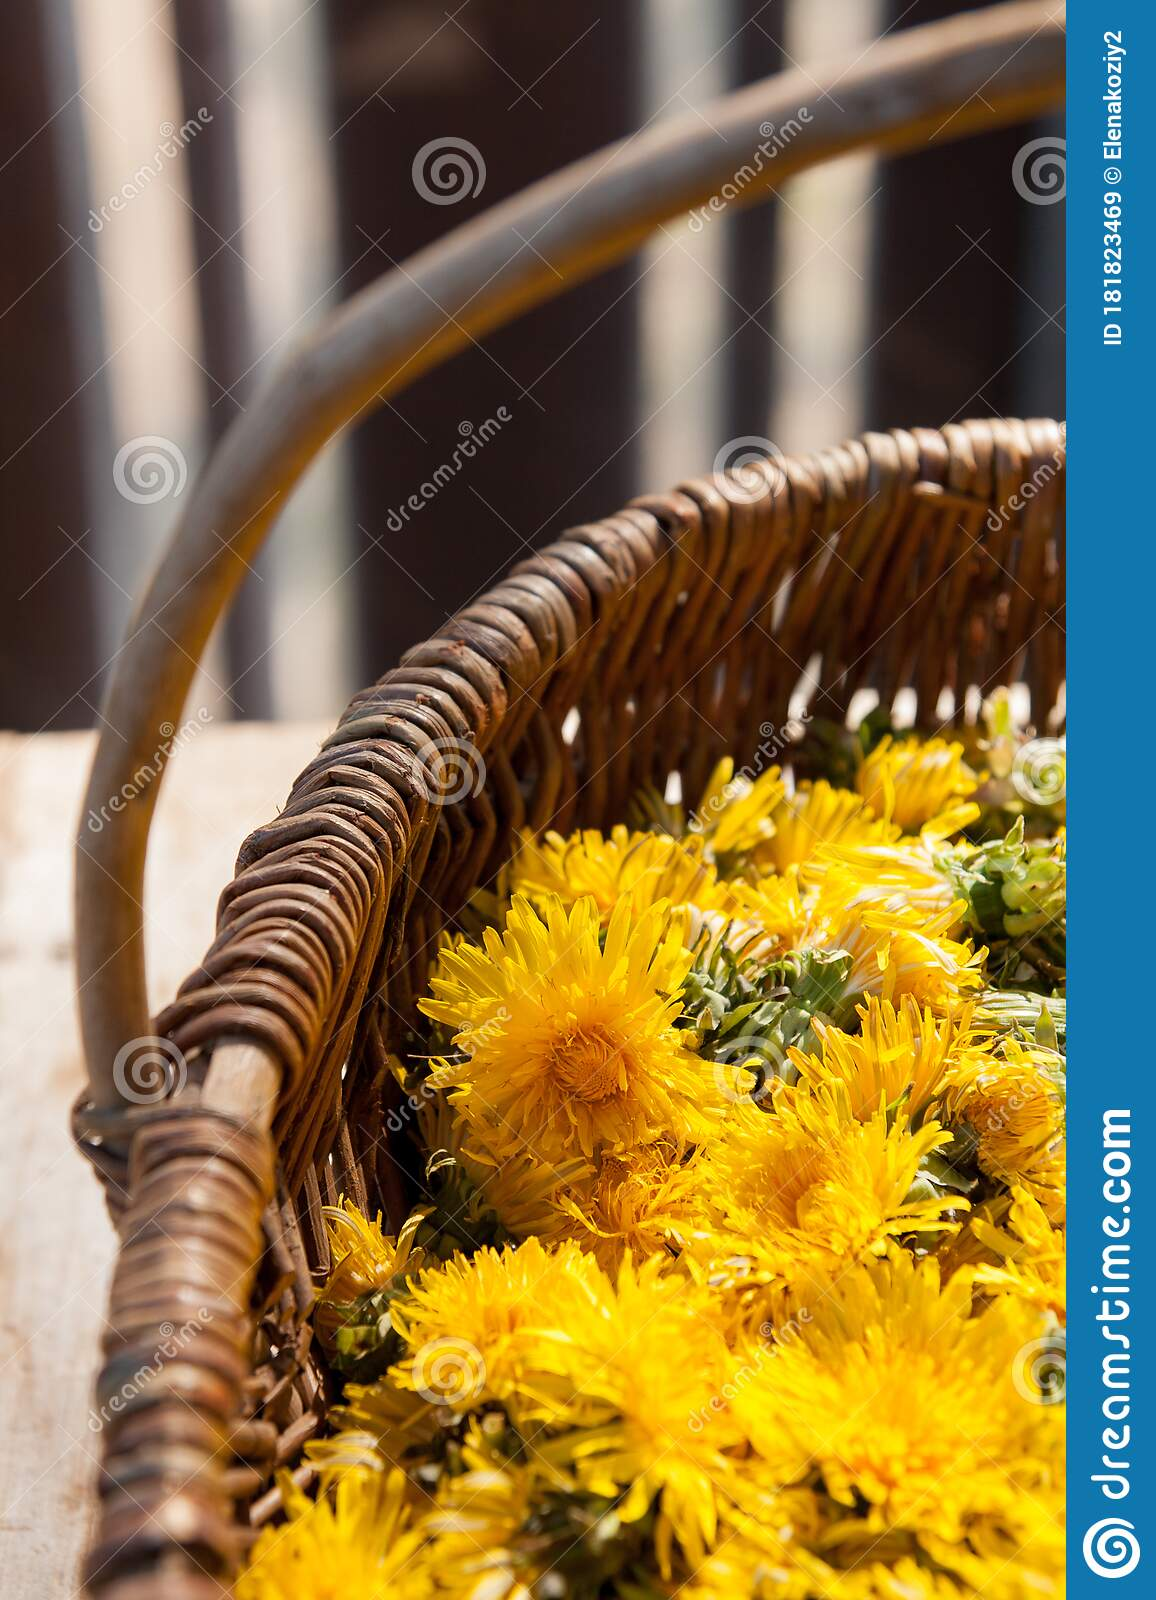 Braided Natural Basket With Yellow Dandelion Flowers Stock Image Image Of Green Collect 181823469